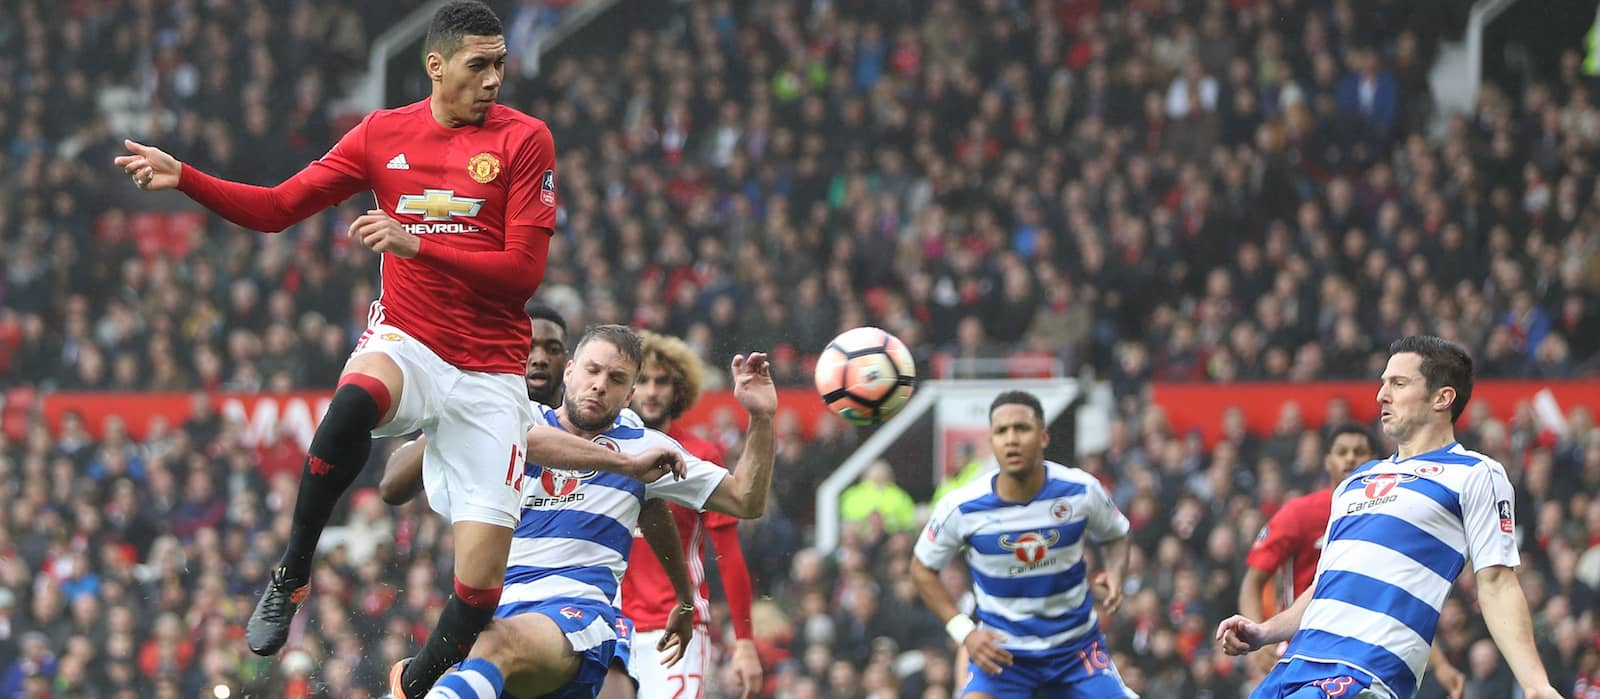 Chris Smalling: Manchester United players believe we can win the Premier League